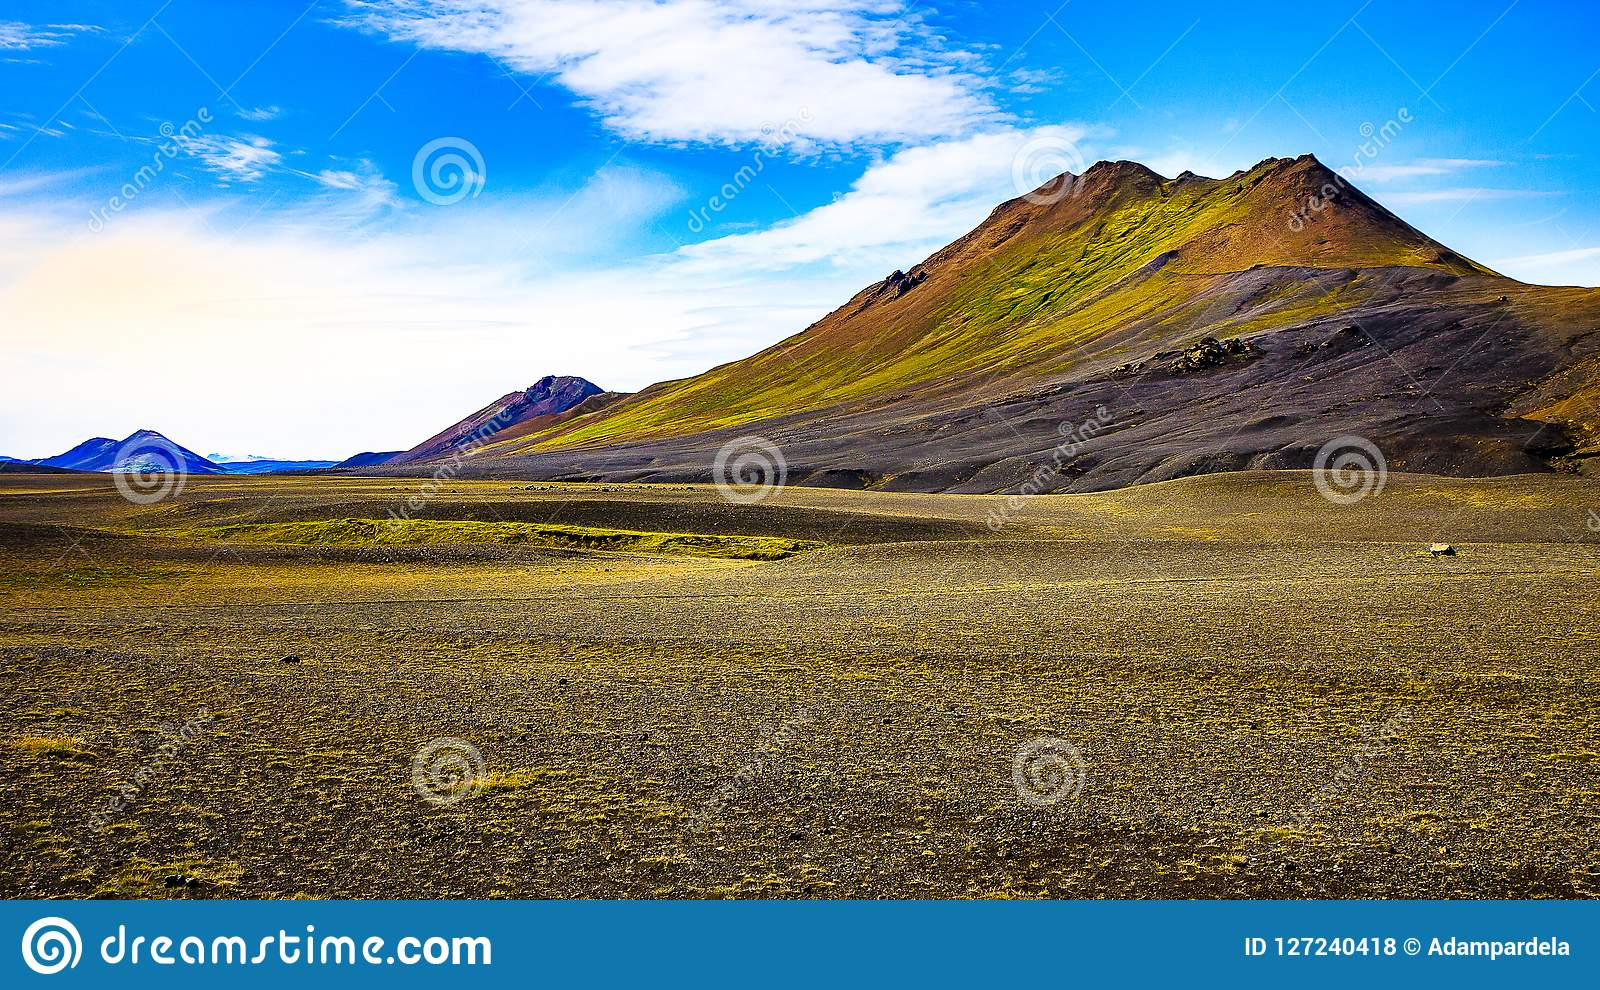 Iceland nature - colorful vulcanic mountains